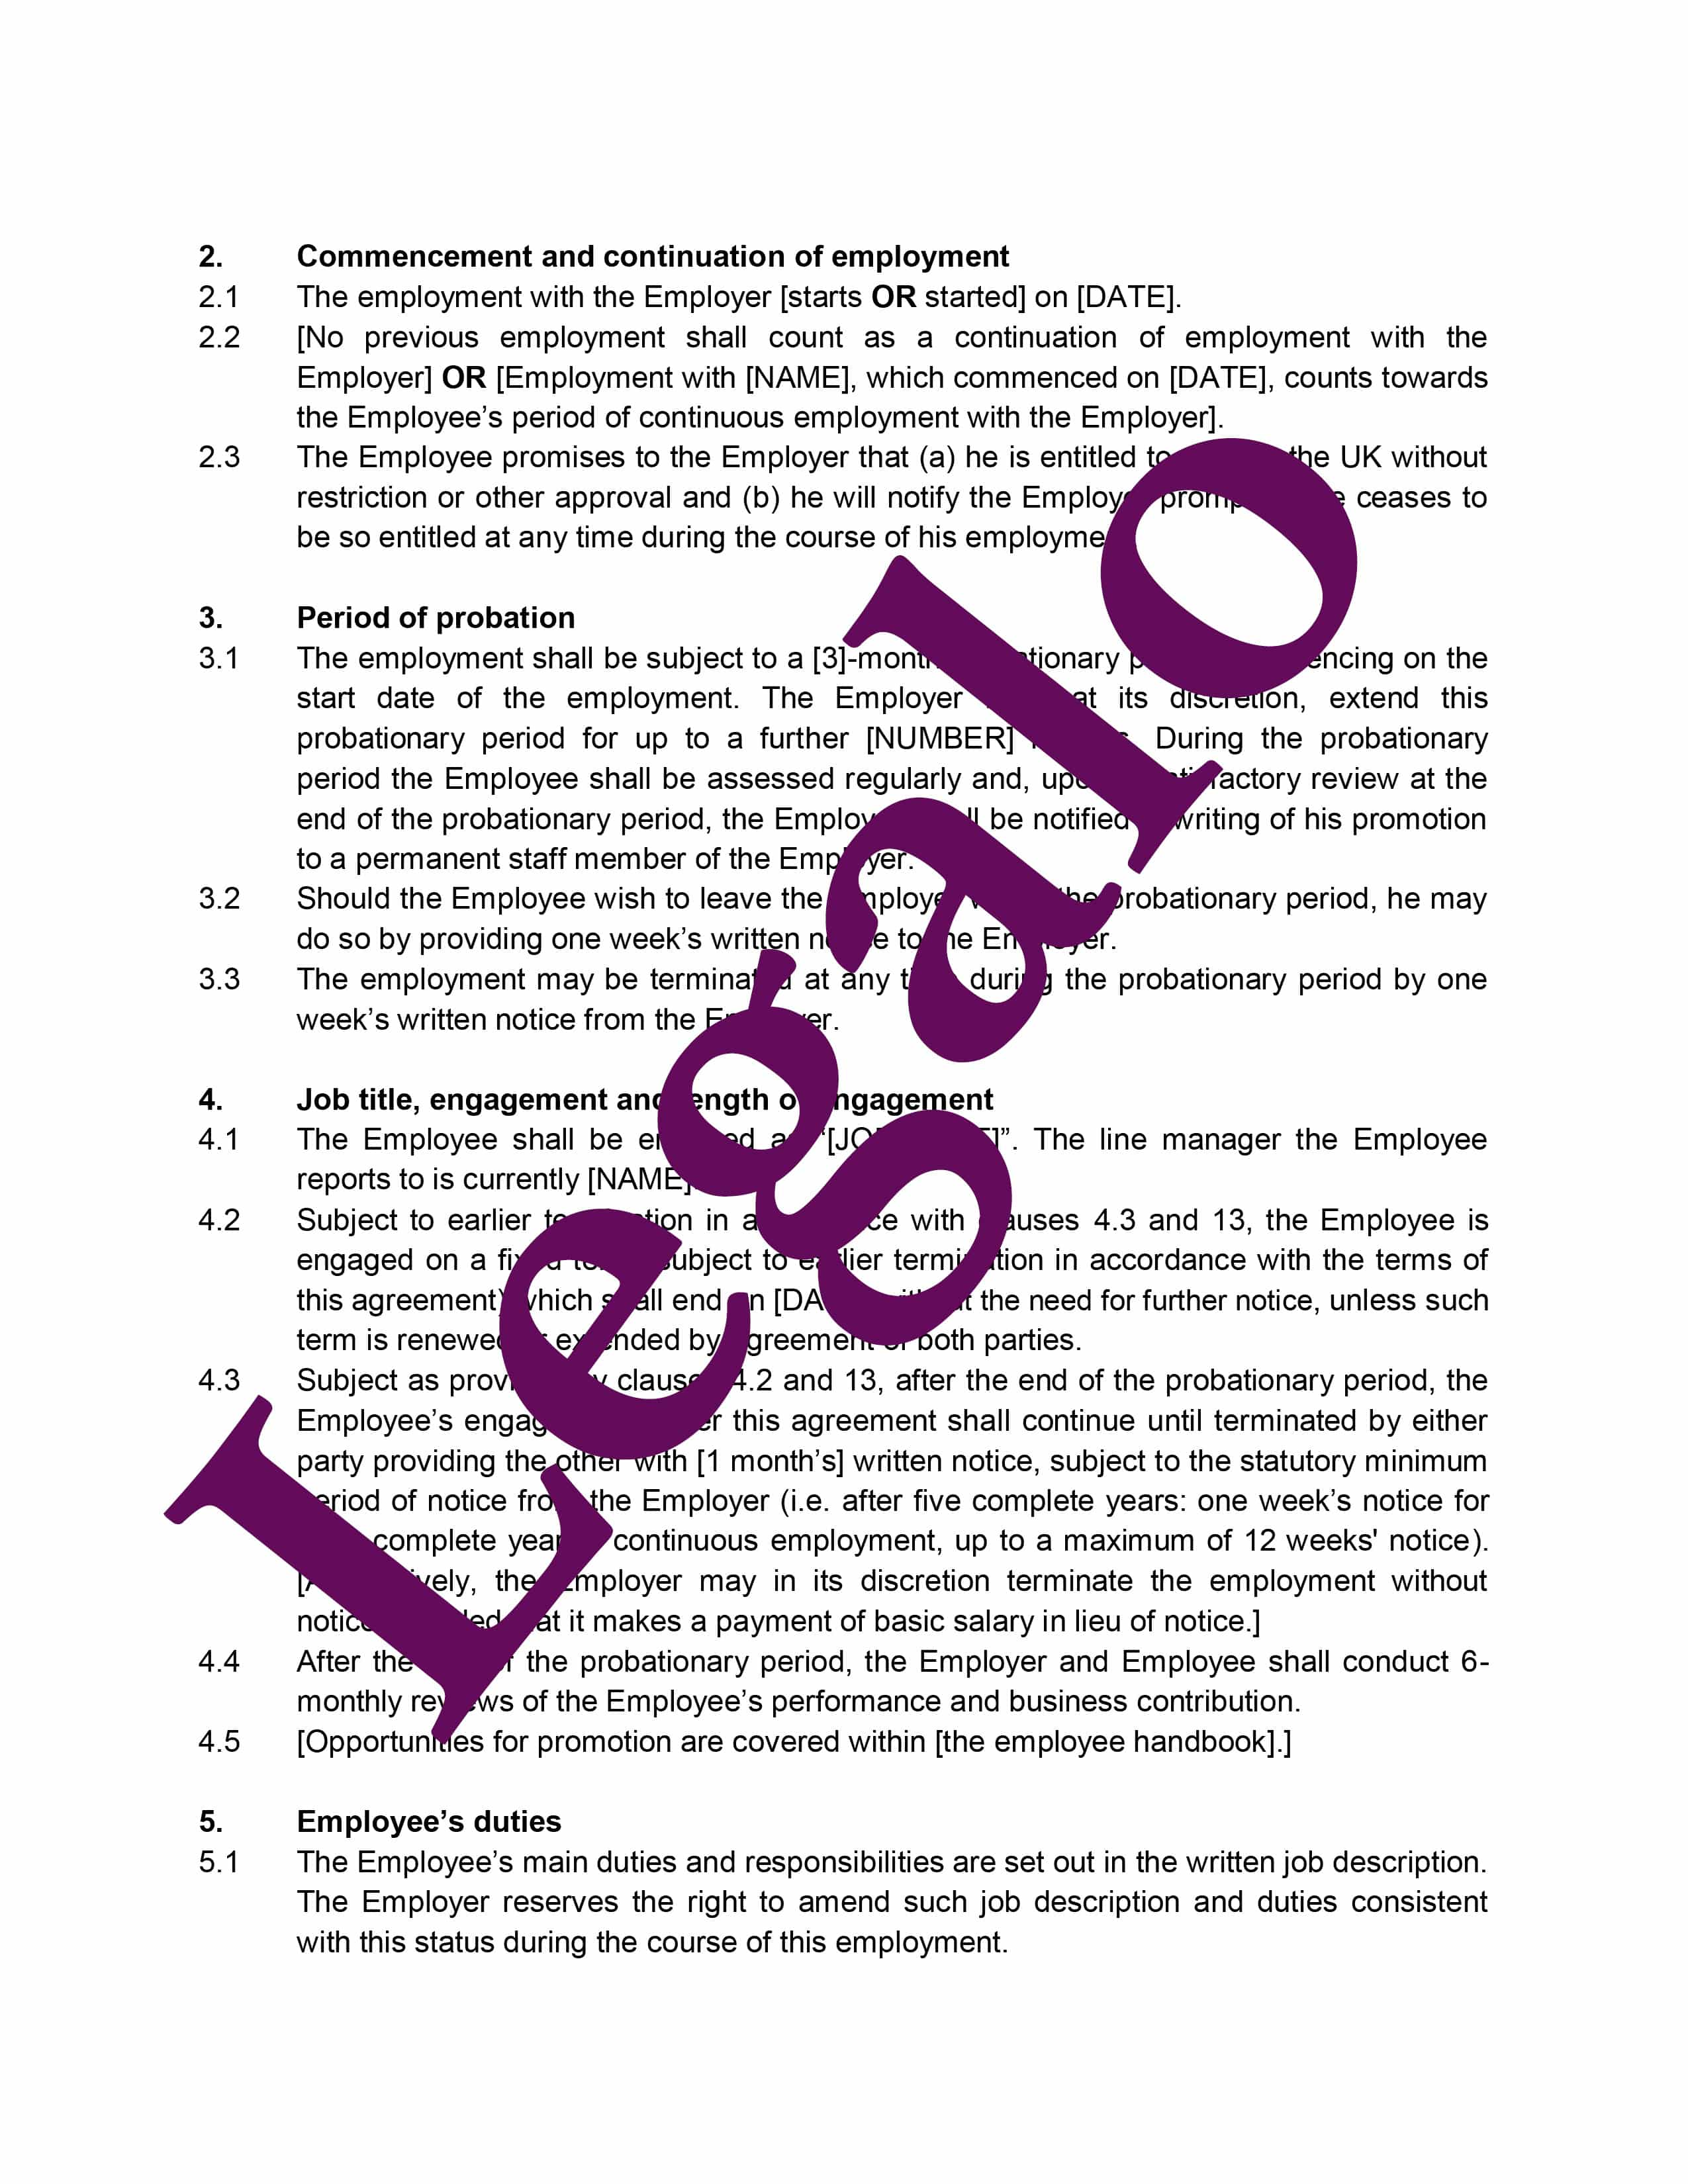 Fixed term employment contract preview image page 2